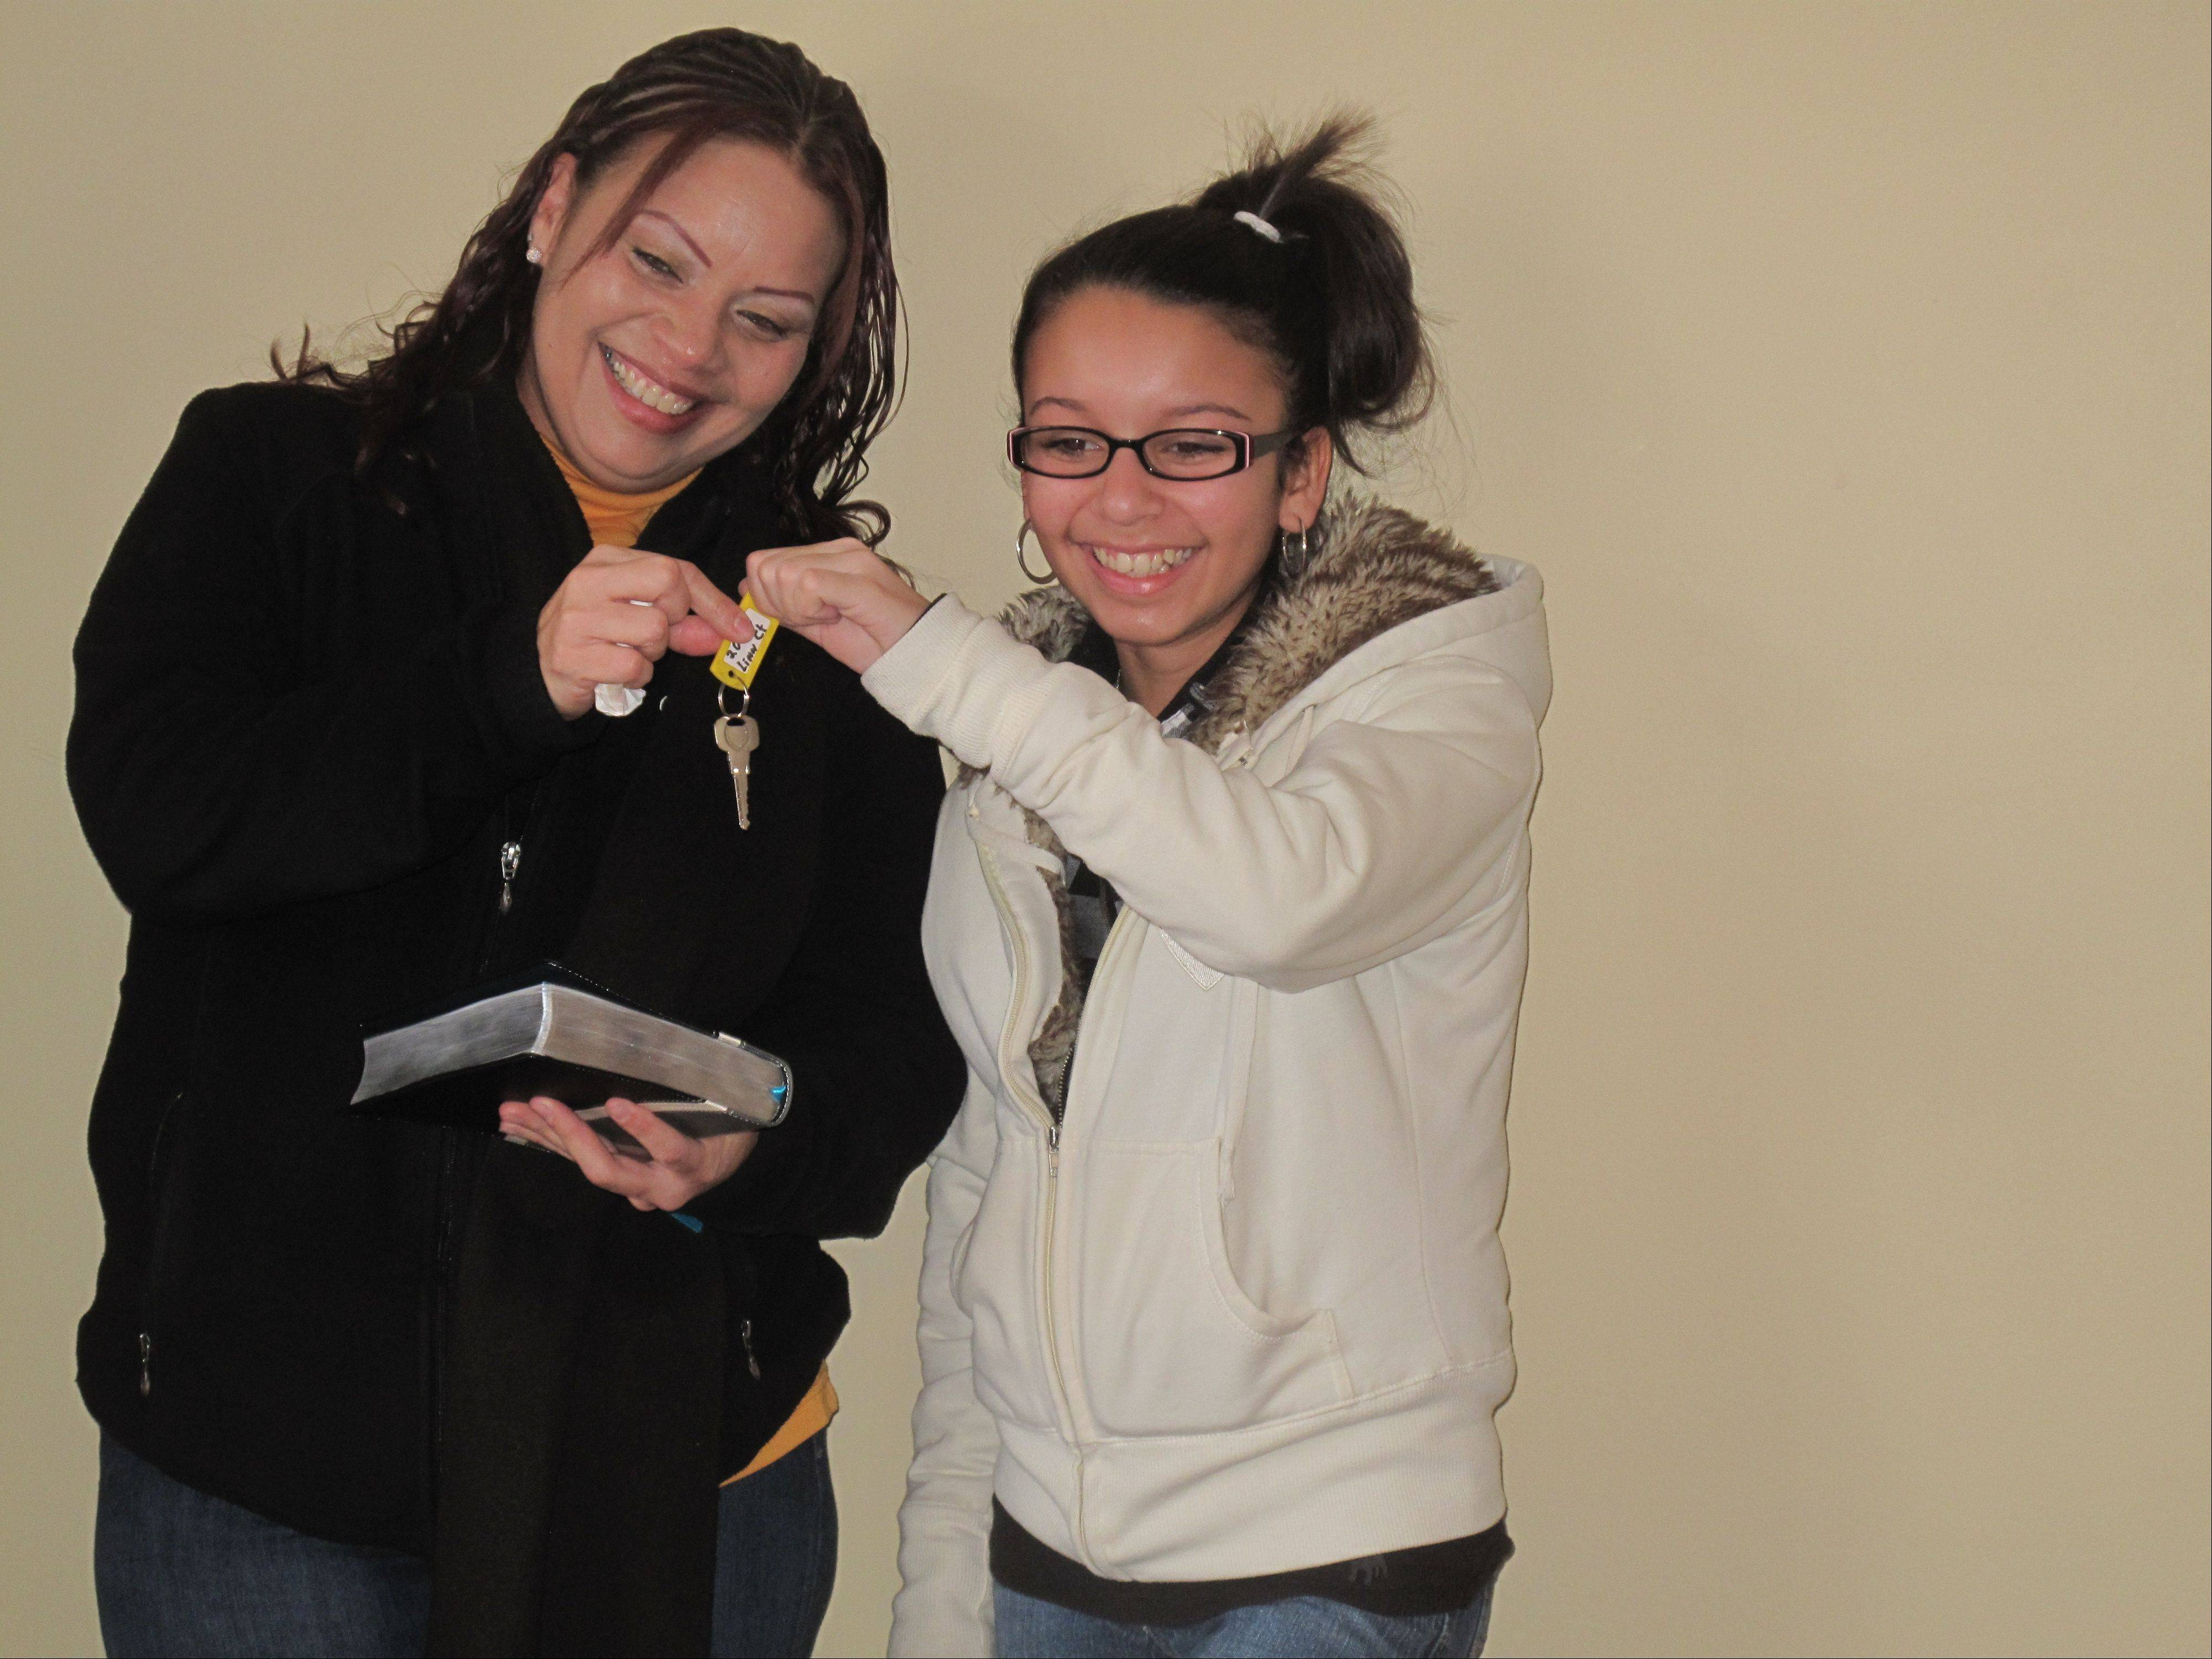 Enid Vargas and her daughter, 13-year-old Wilenid, hold keys to their new home on the 200 block of Linn Court in North Aurora during a ceremony Fox Valley Habitat for Humanity held Saturday to dedicate the home.